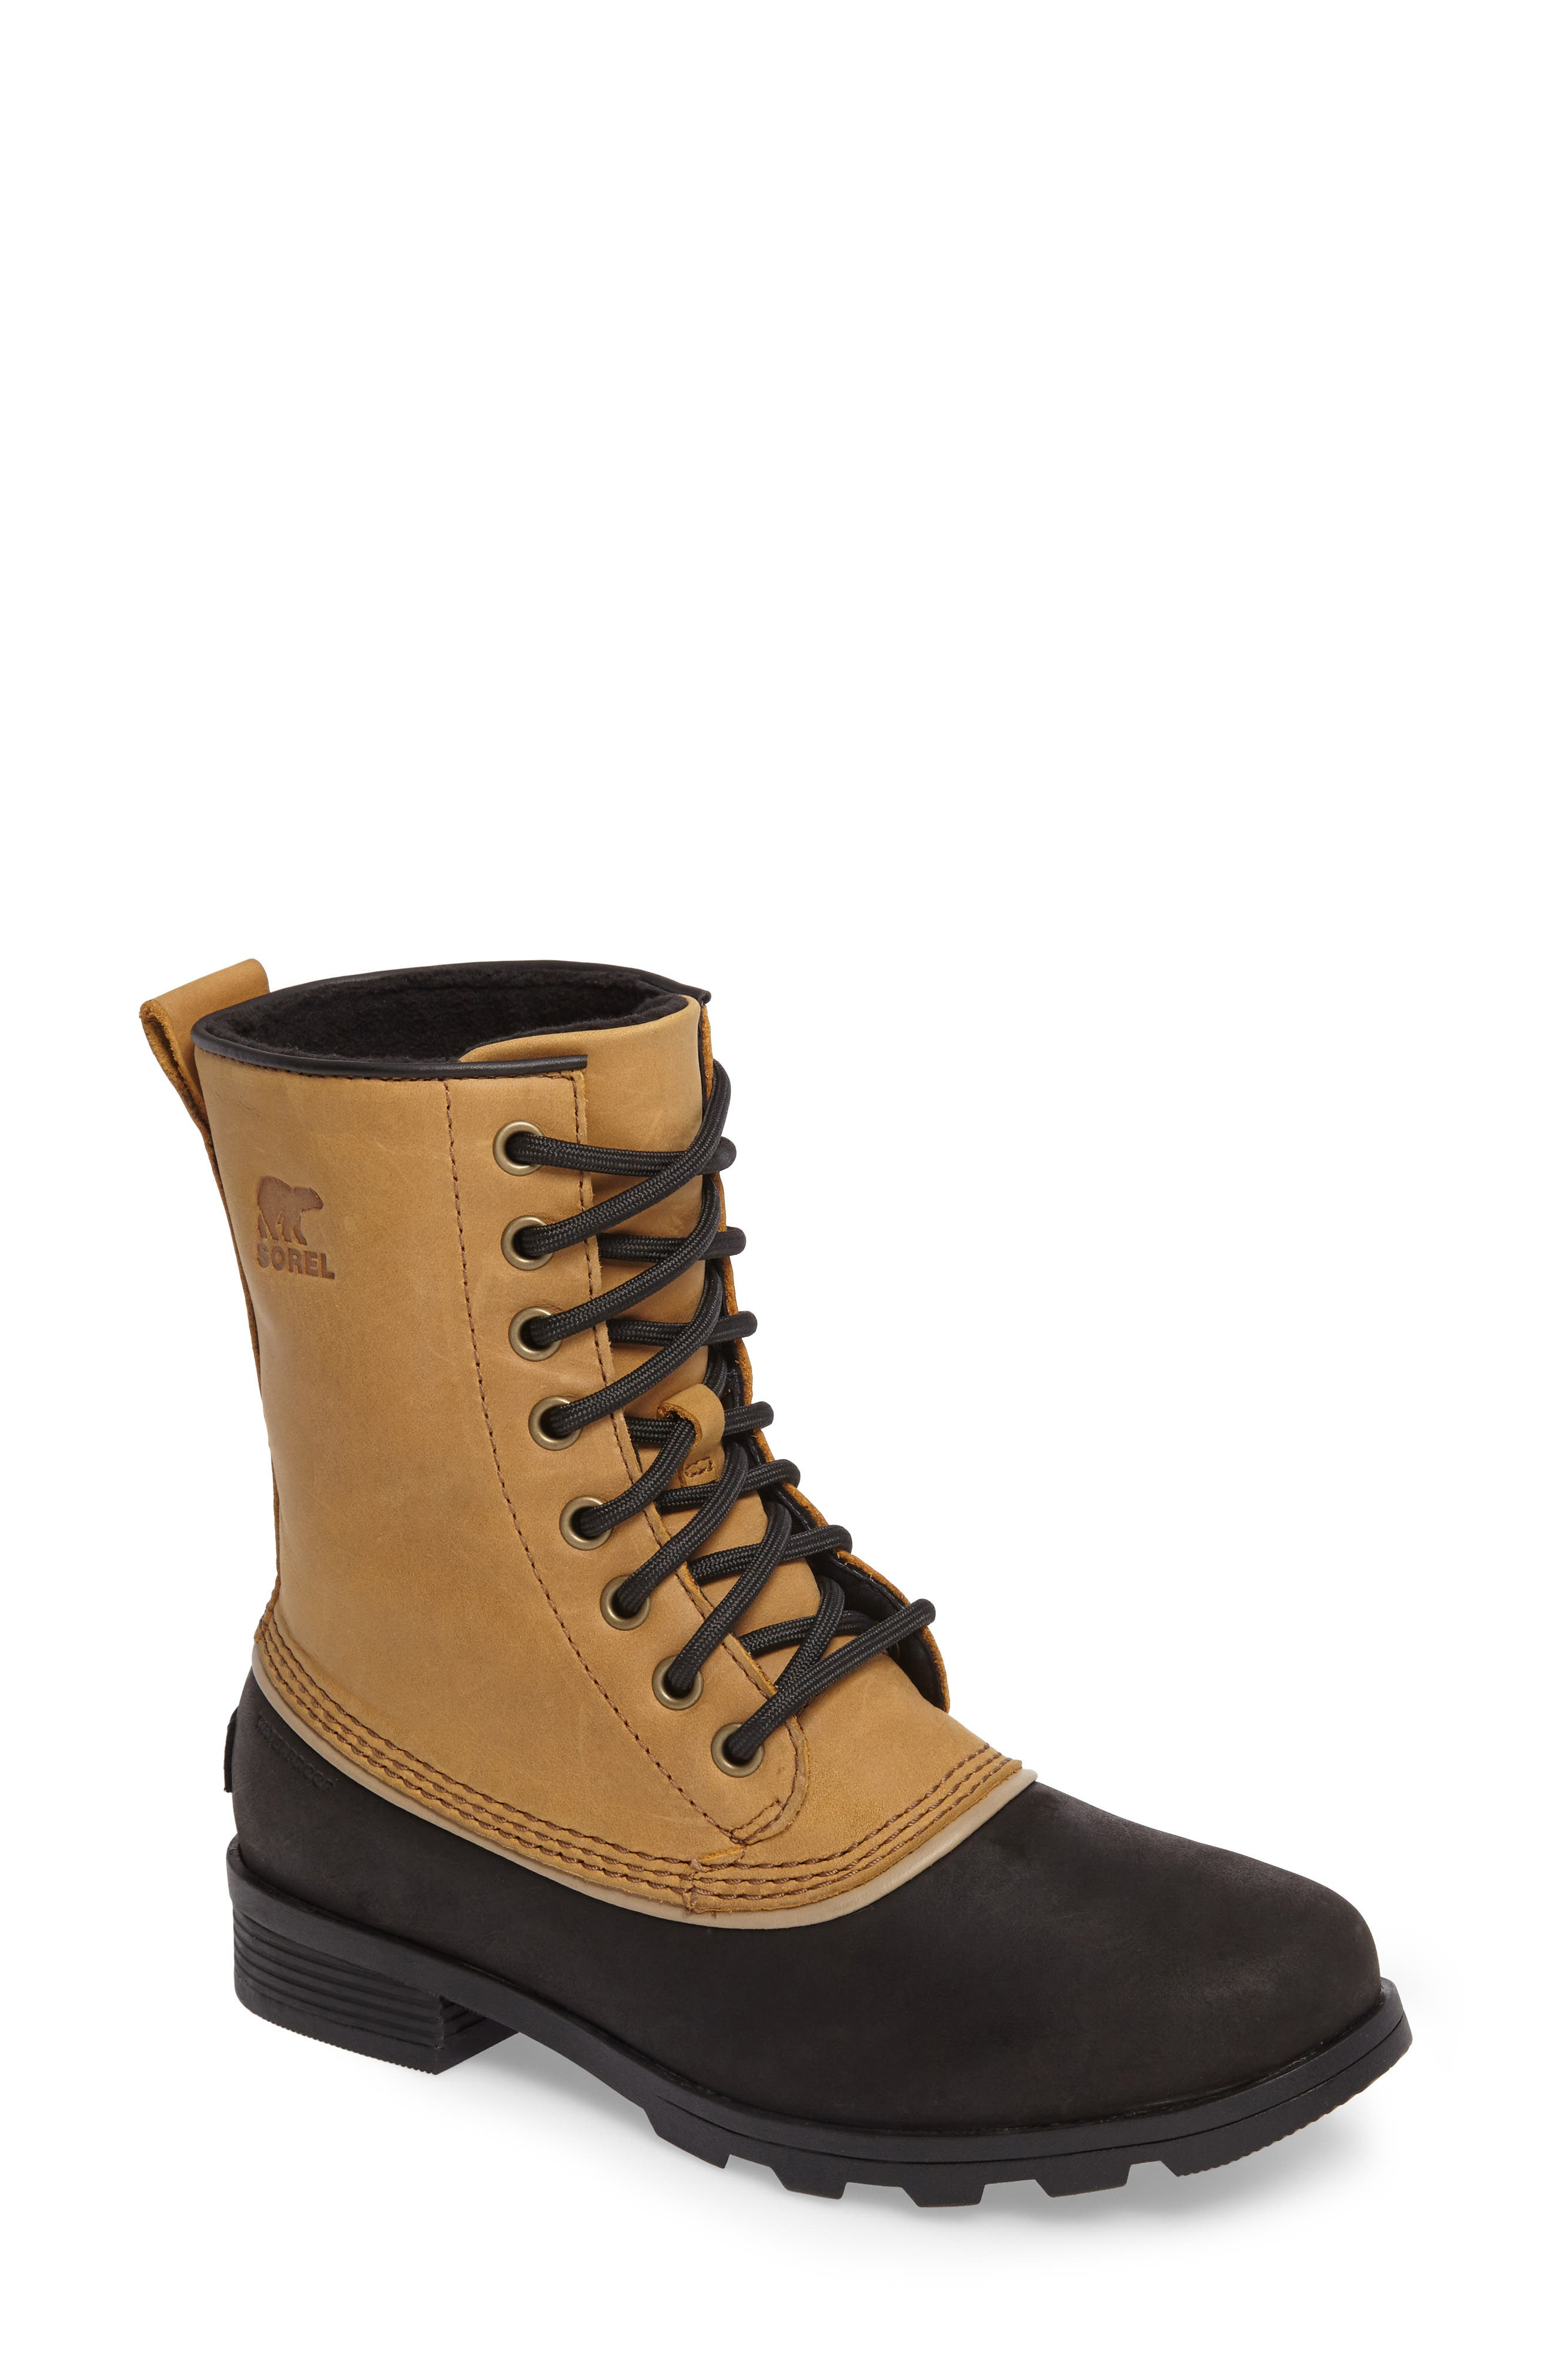 Sorel Emelie 1964 Waterproof Bootie, Brown